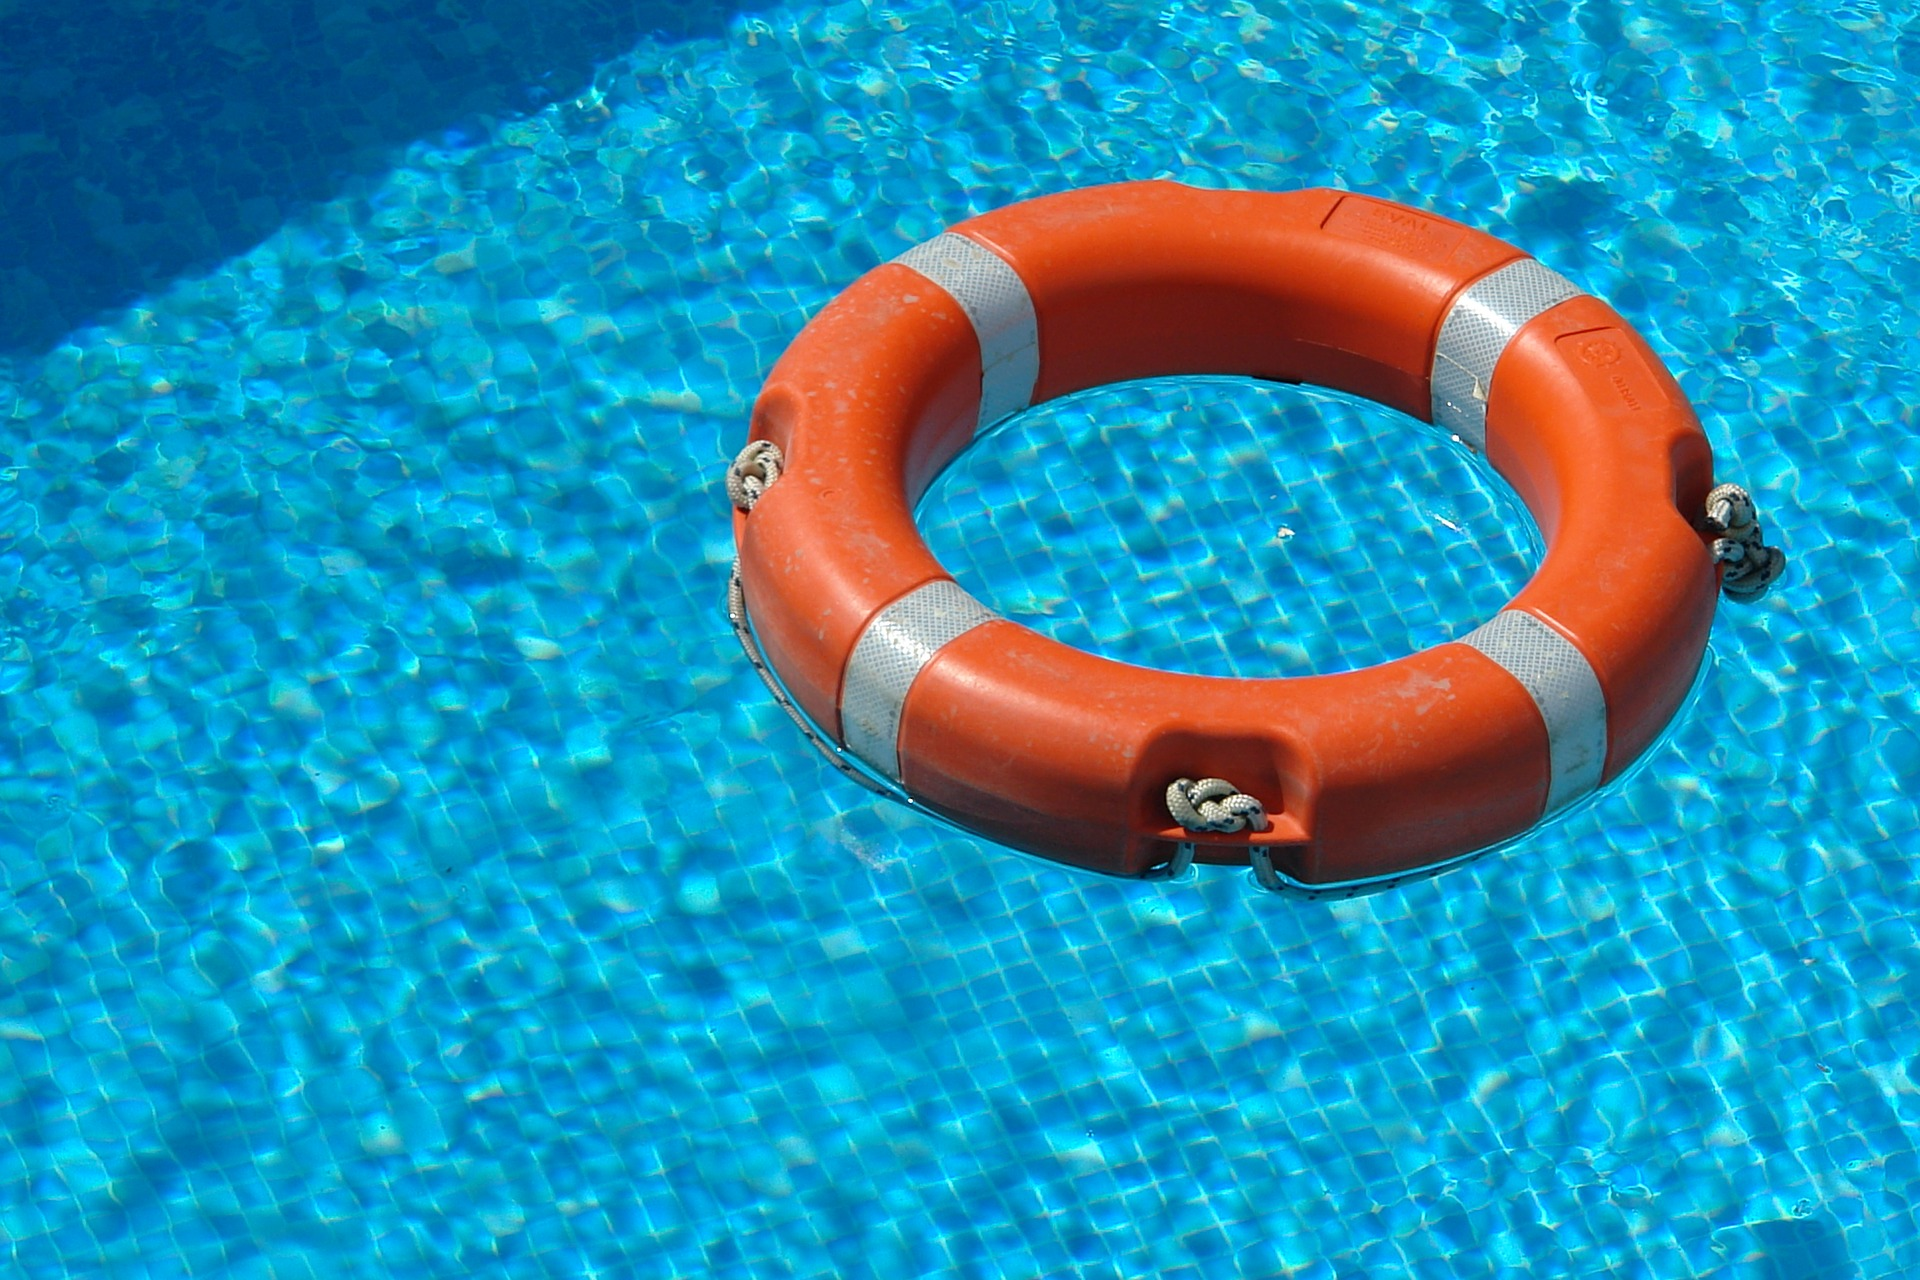 swimming pool water with an orange floating safety device